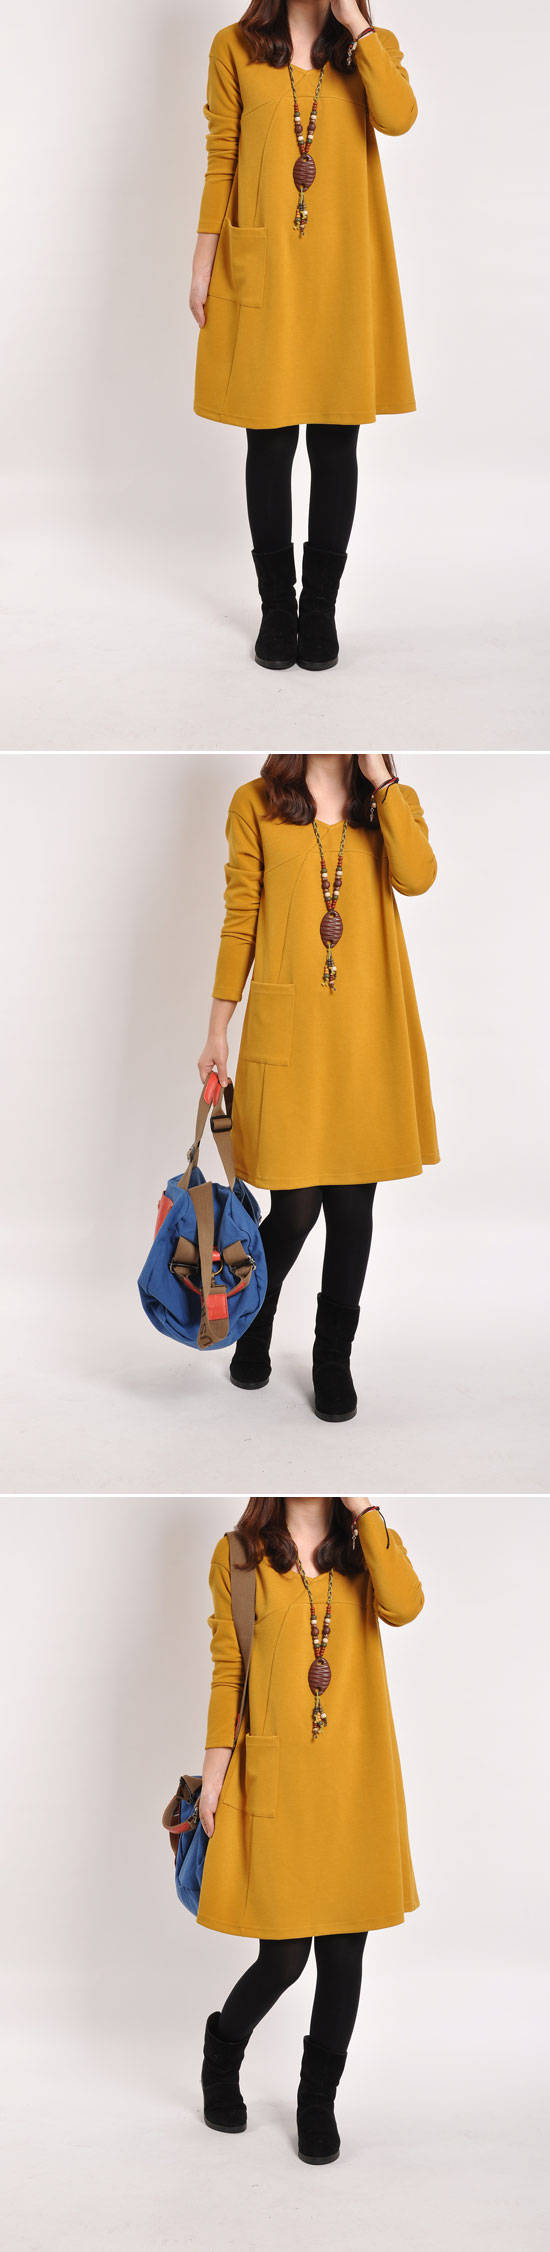 M-2XL  Winter Autumn Casual Maternity Dresses Pregnancy Dress for Pregnant Women Loose Knee-length Ropa  Maternity  Clothes